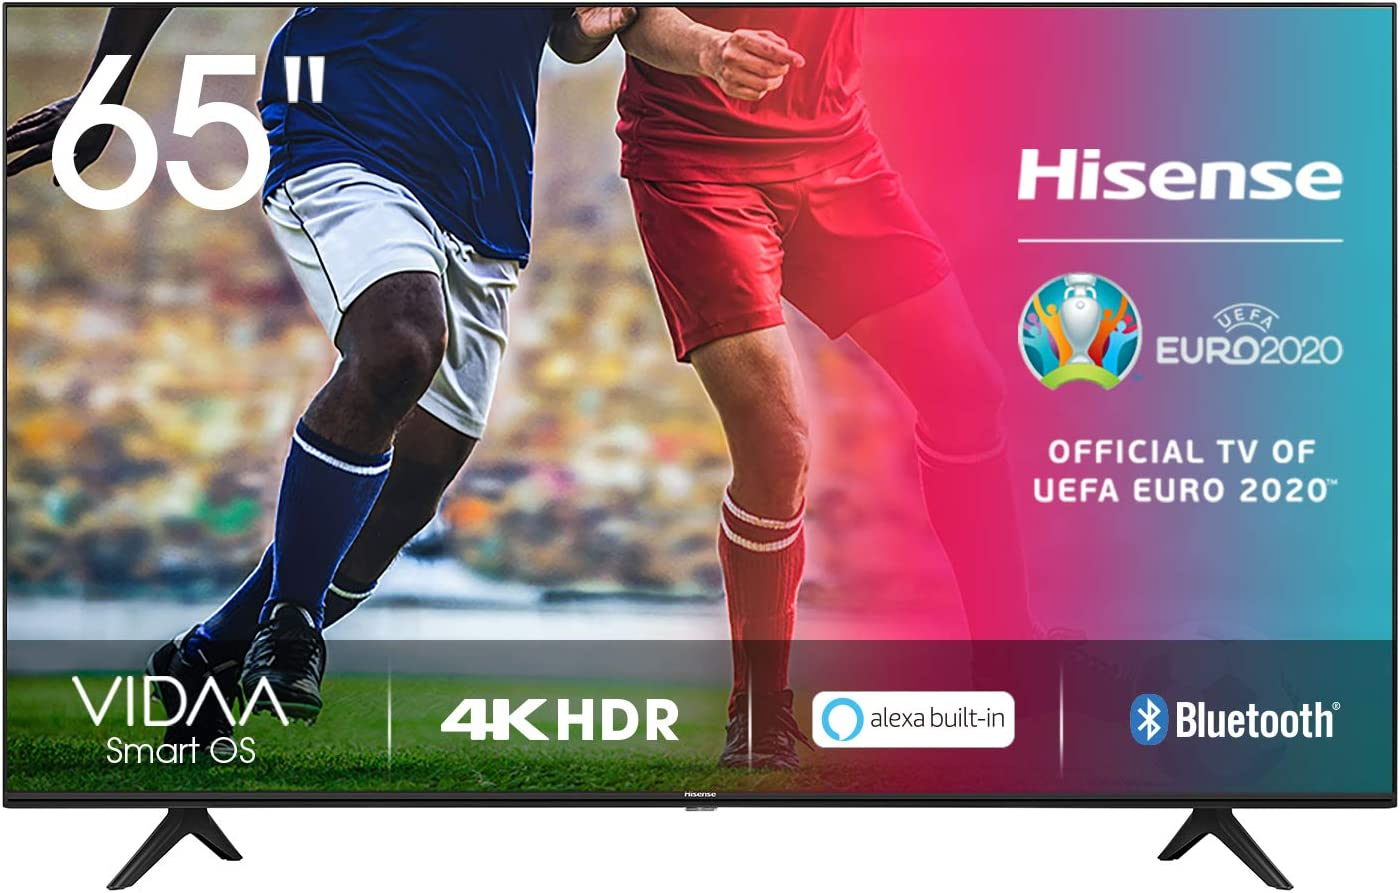 Hisense UHD TV 2020 65AE7000F - Smart TV Resolución 4K con Alexa integrada, Precision Colour, escalado UHD con IA, Ultra Dimming, audio DTS Studio Sound, Vidaa U 4.0: Amazon.es: Electrónica